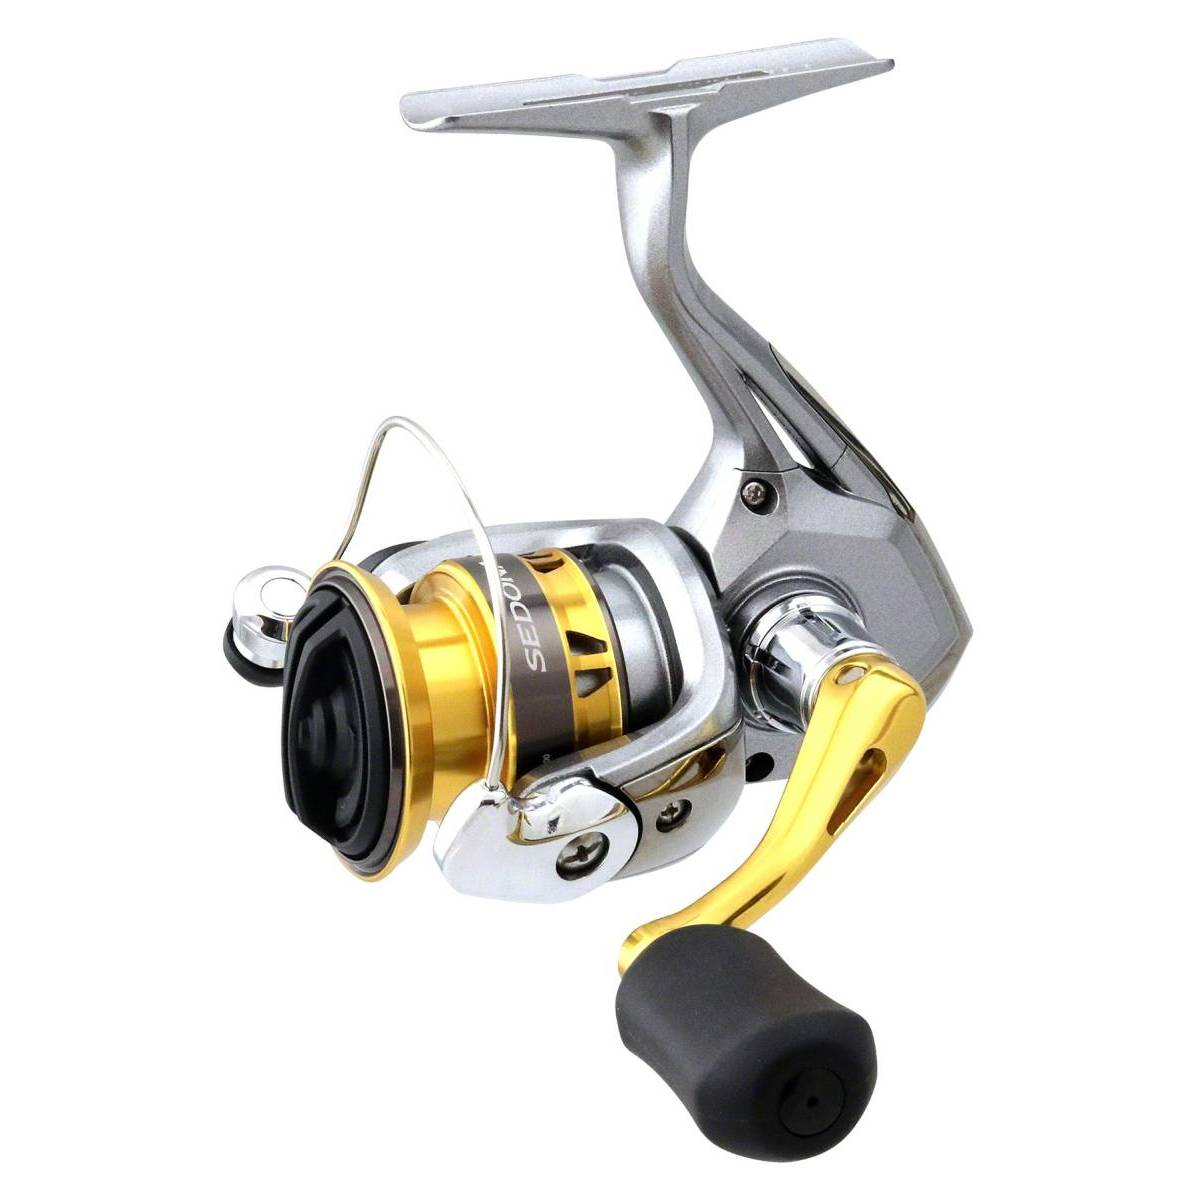 Shimano Sedona Spinning Reel Combo; This is part of the Spinning collection offered from Fishin' My Best Life - fishinmybestlife.com